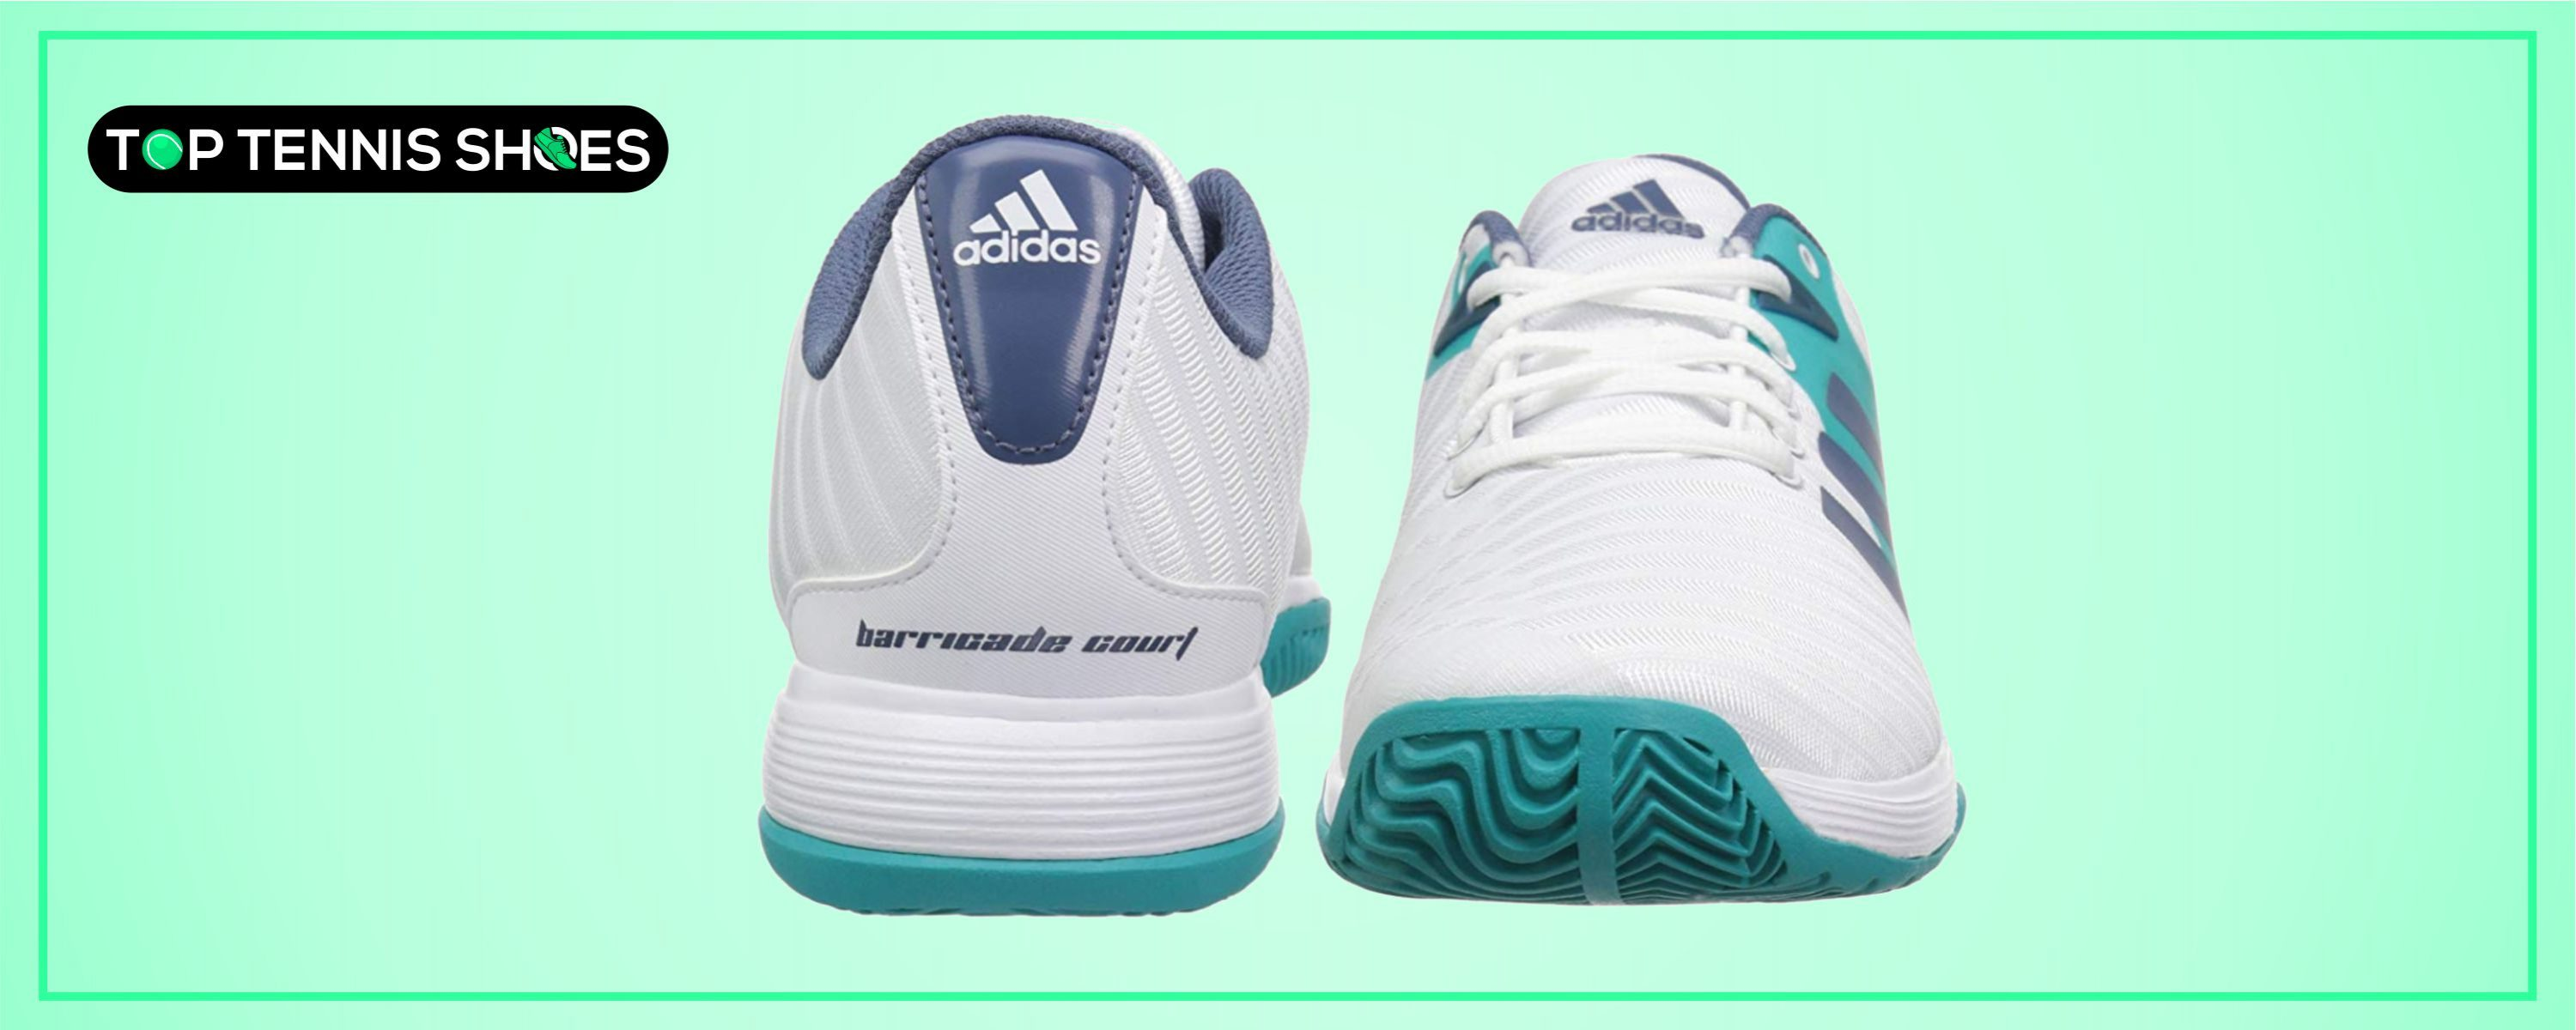 Affordable Tennis Shoes for Toe Draggers